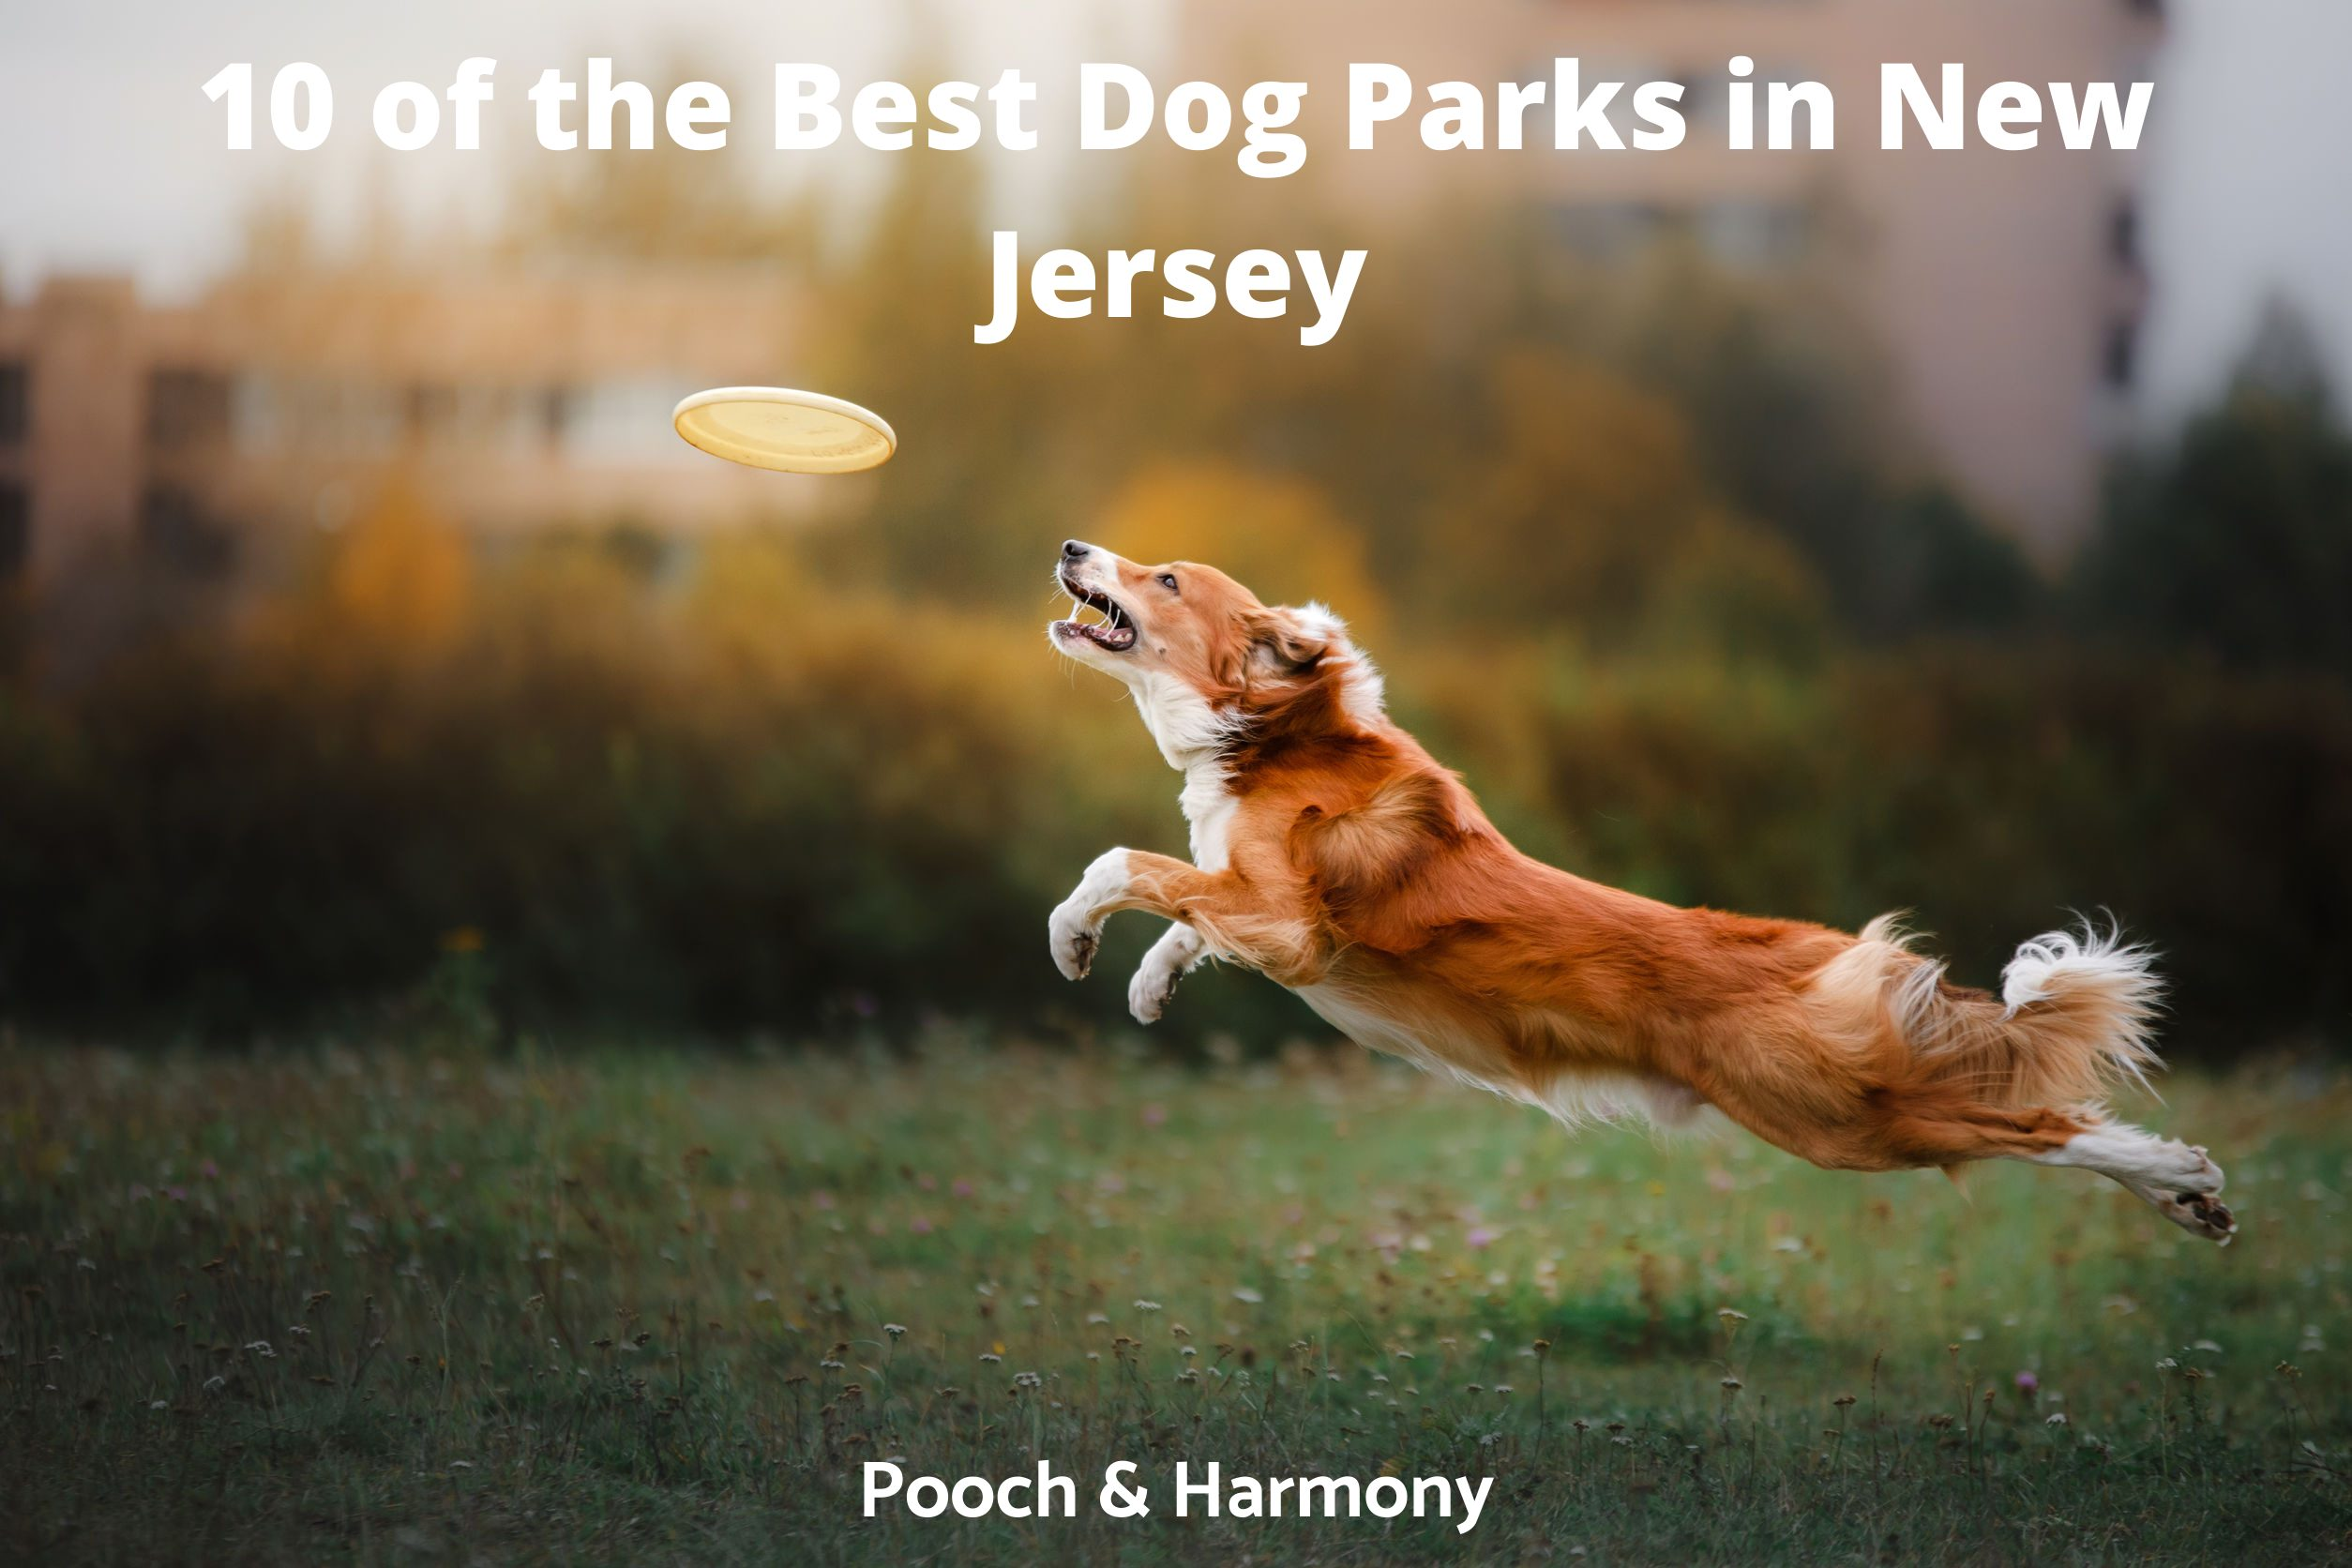 Best Dog Parks in New Jersey